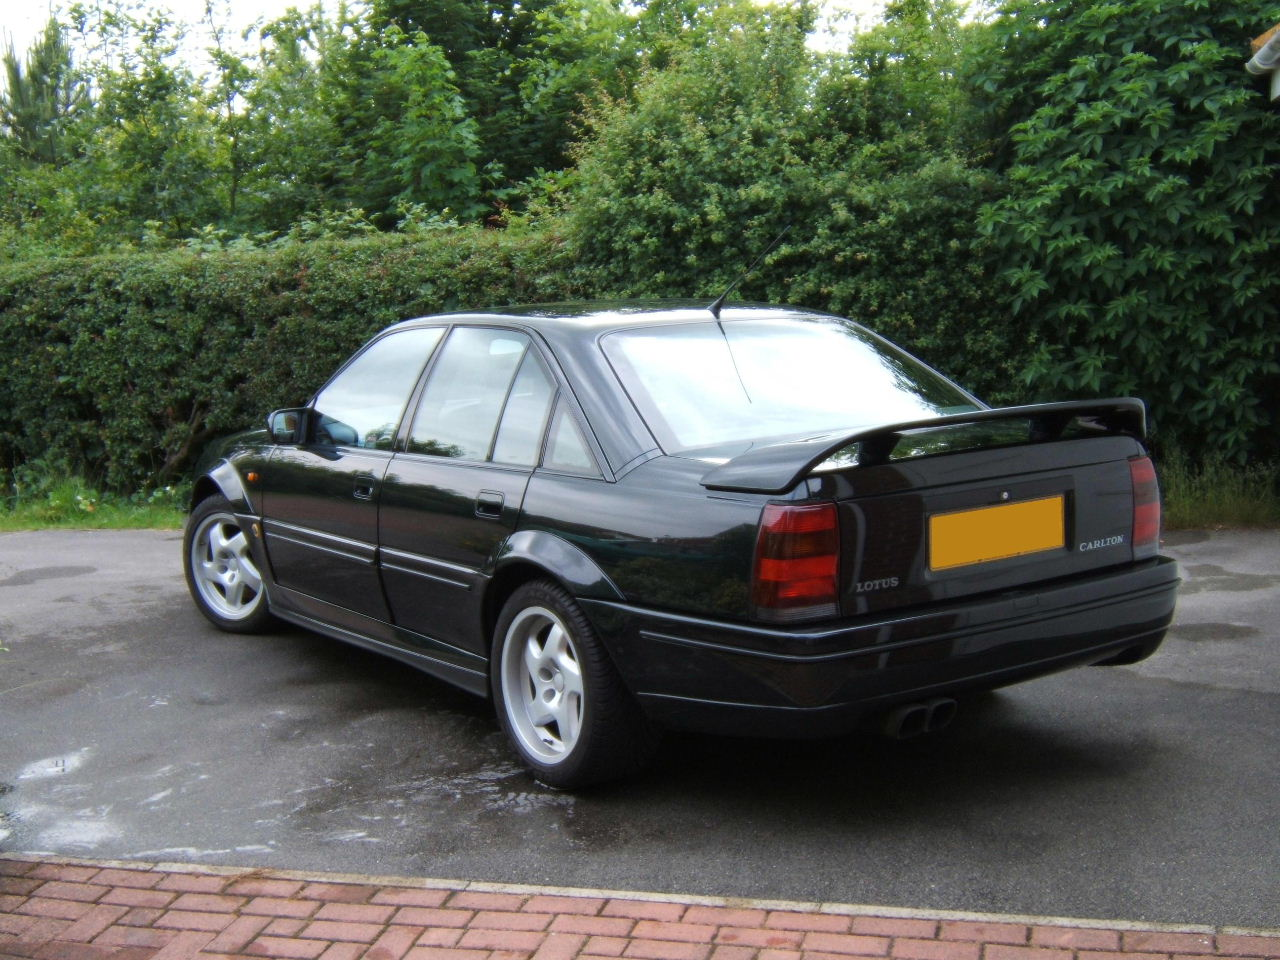 LOTUS CARLTON red